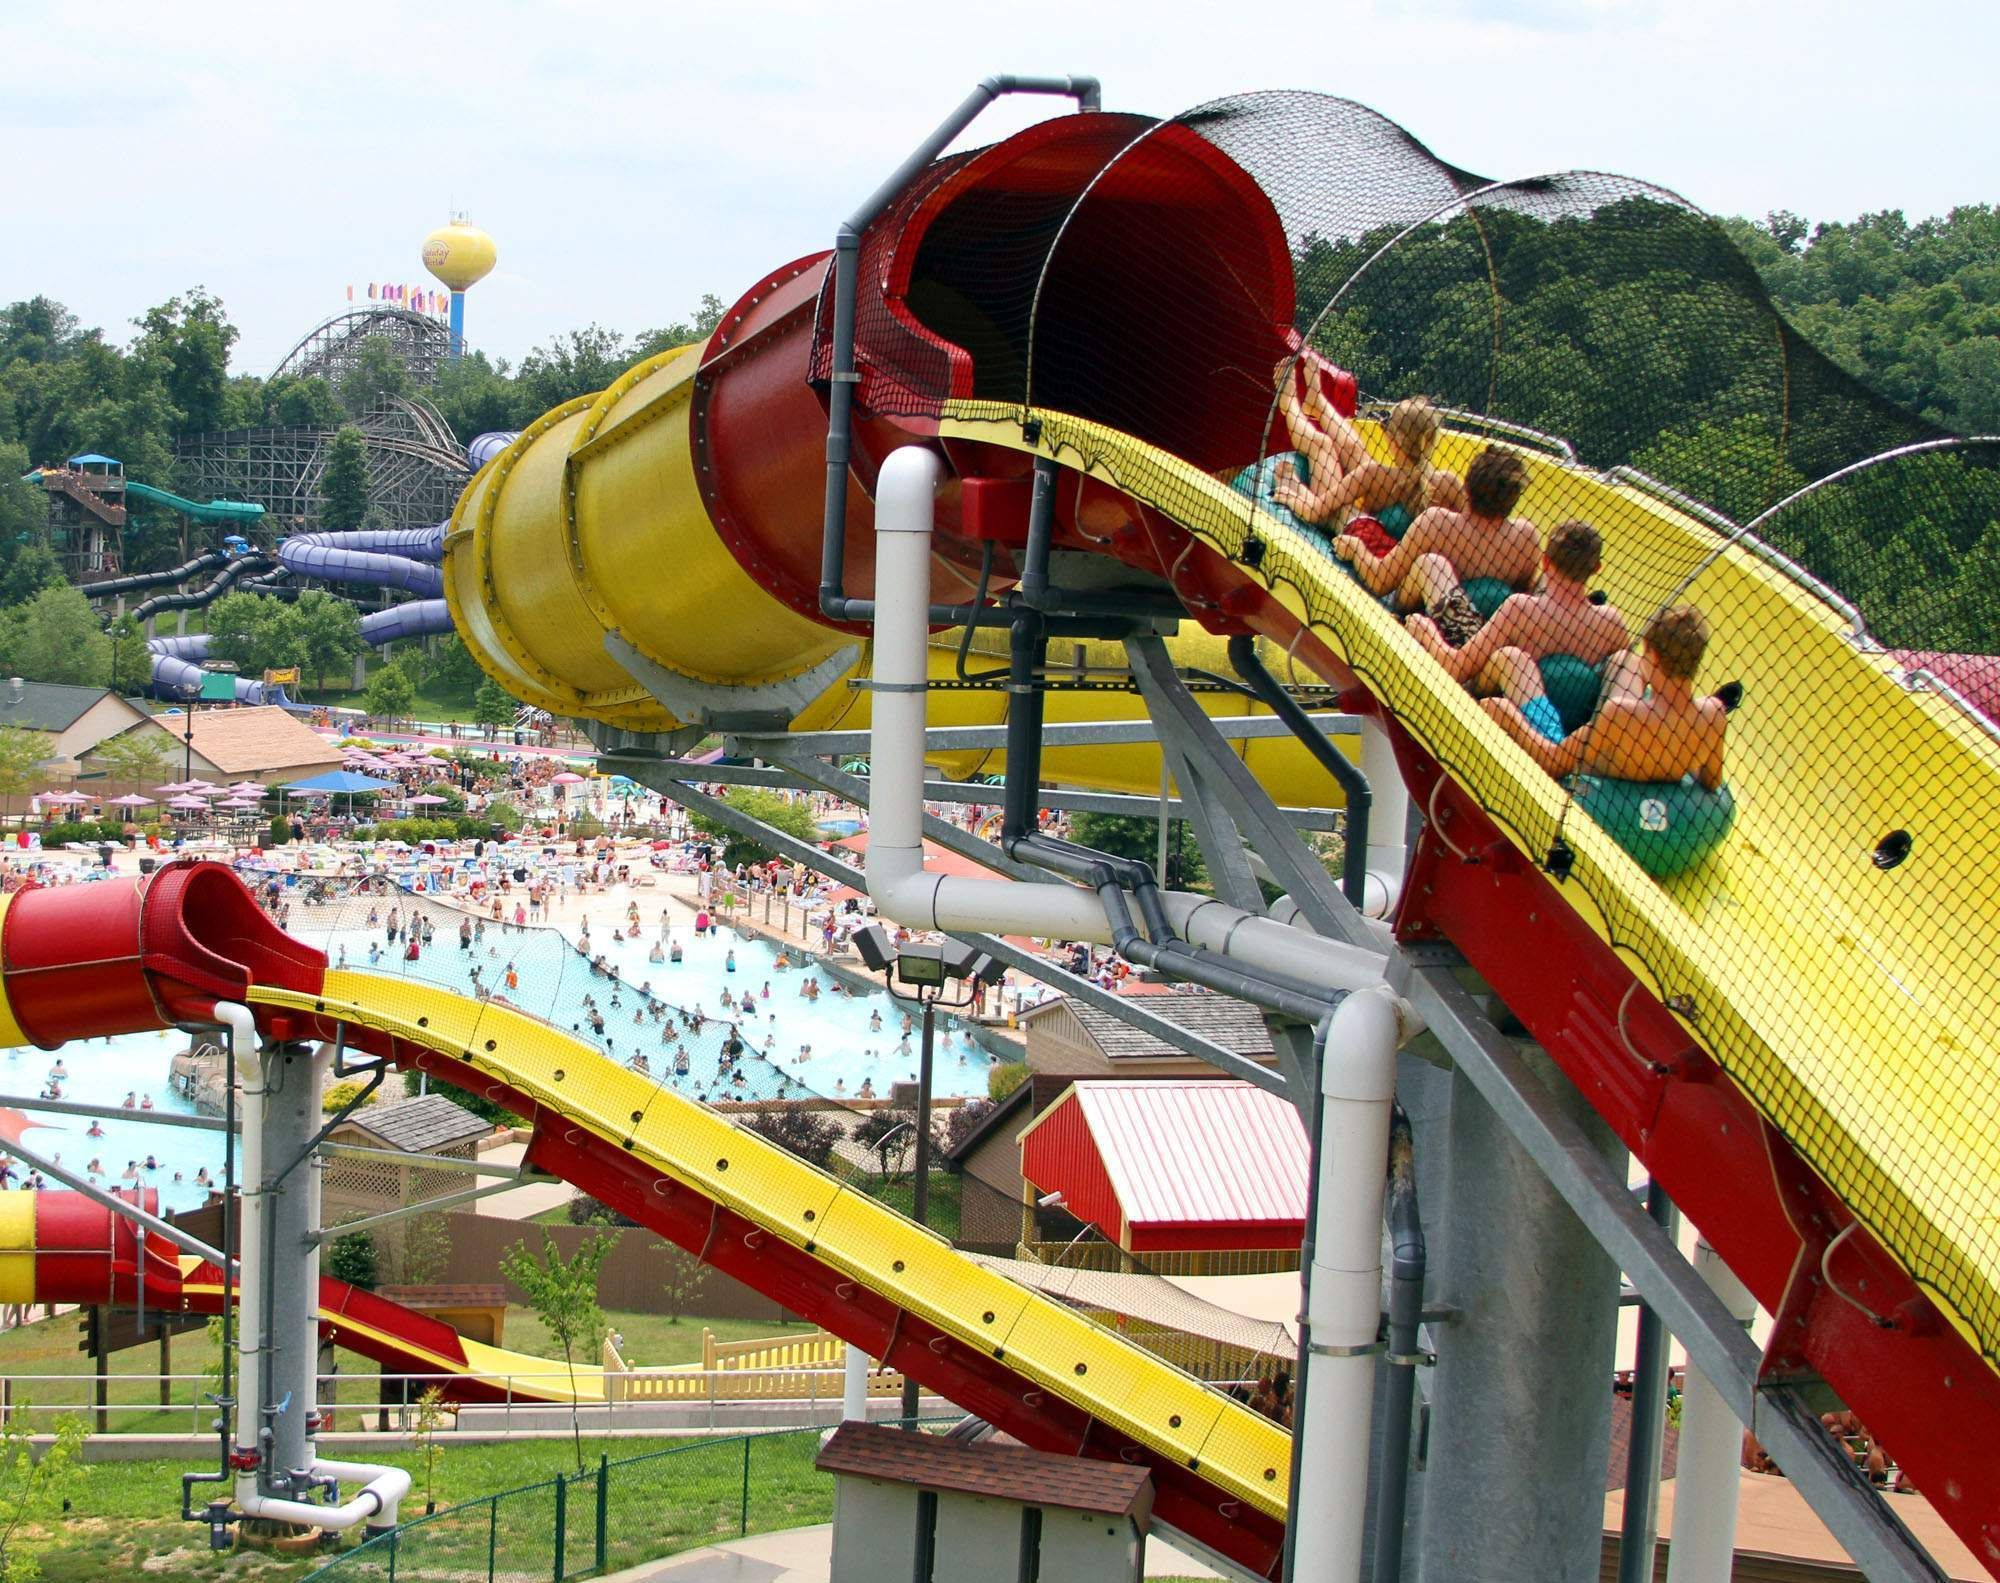 wildebeest water coaster water park rides park and